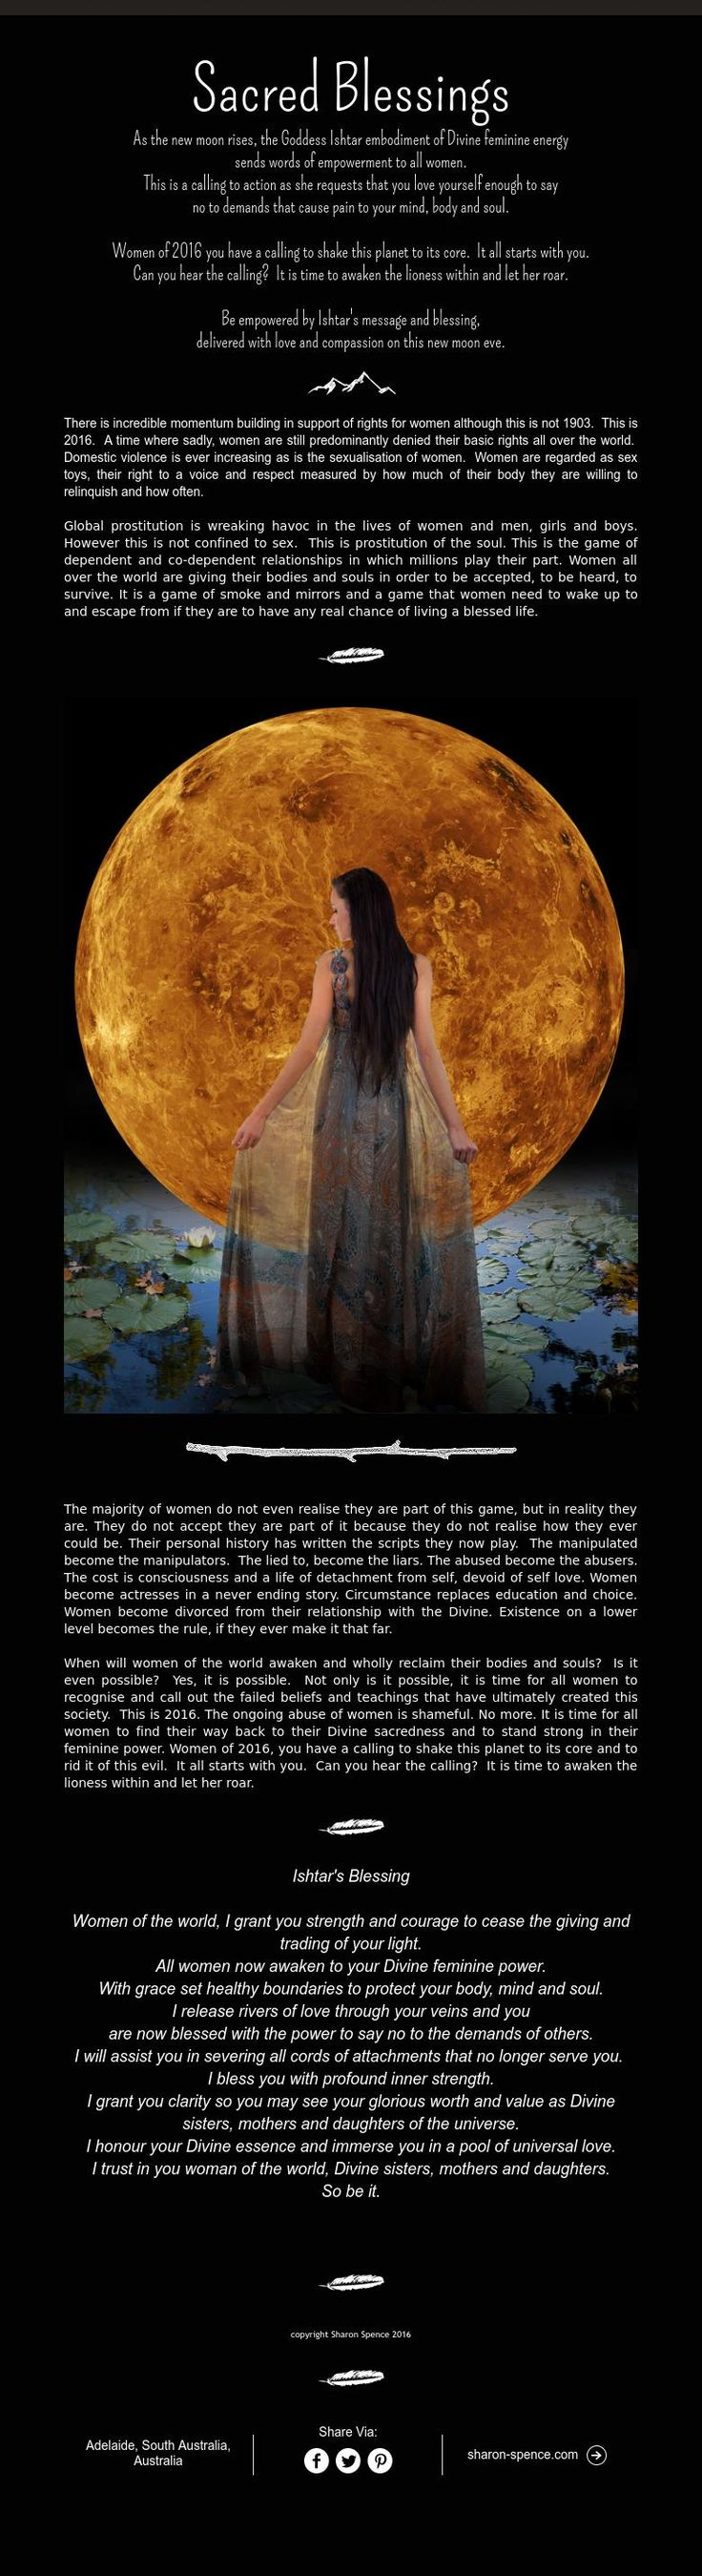 630 best book of shadows images on pinterest book of shadows male sacred blessings as the new moon rises the goddess ishtar embodiment of divine feminine energy sends words of empowerment to all women fandeluxe Image collections